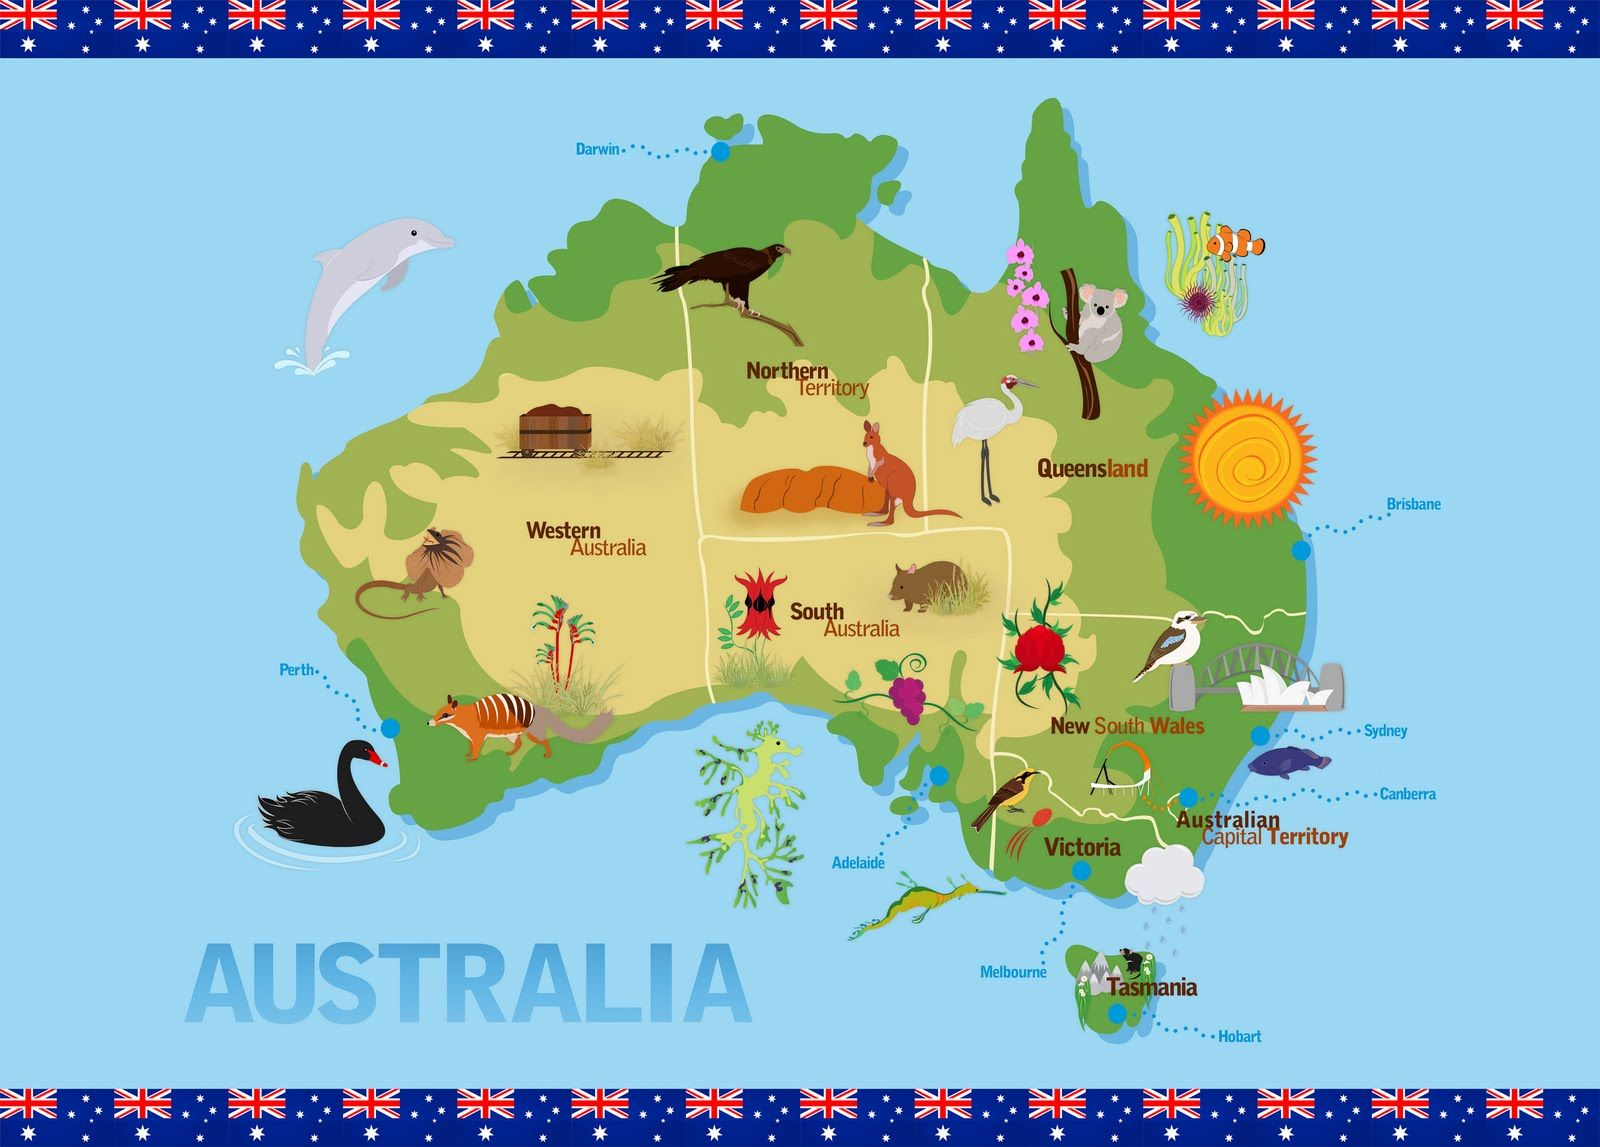 For The Children S Map Of Australia I Thought About What